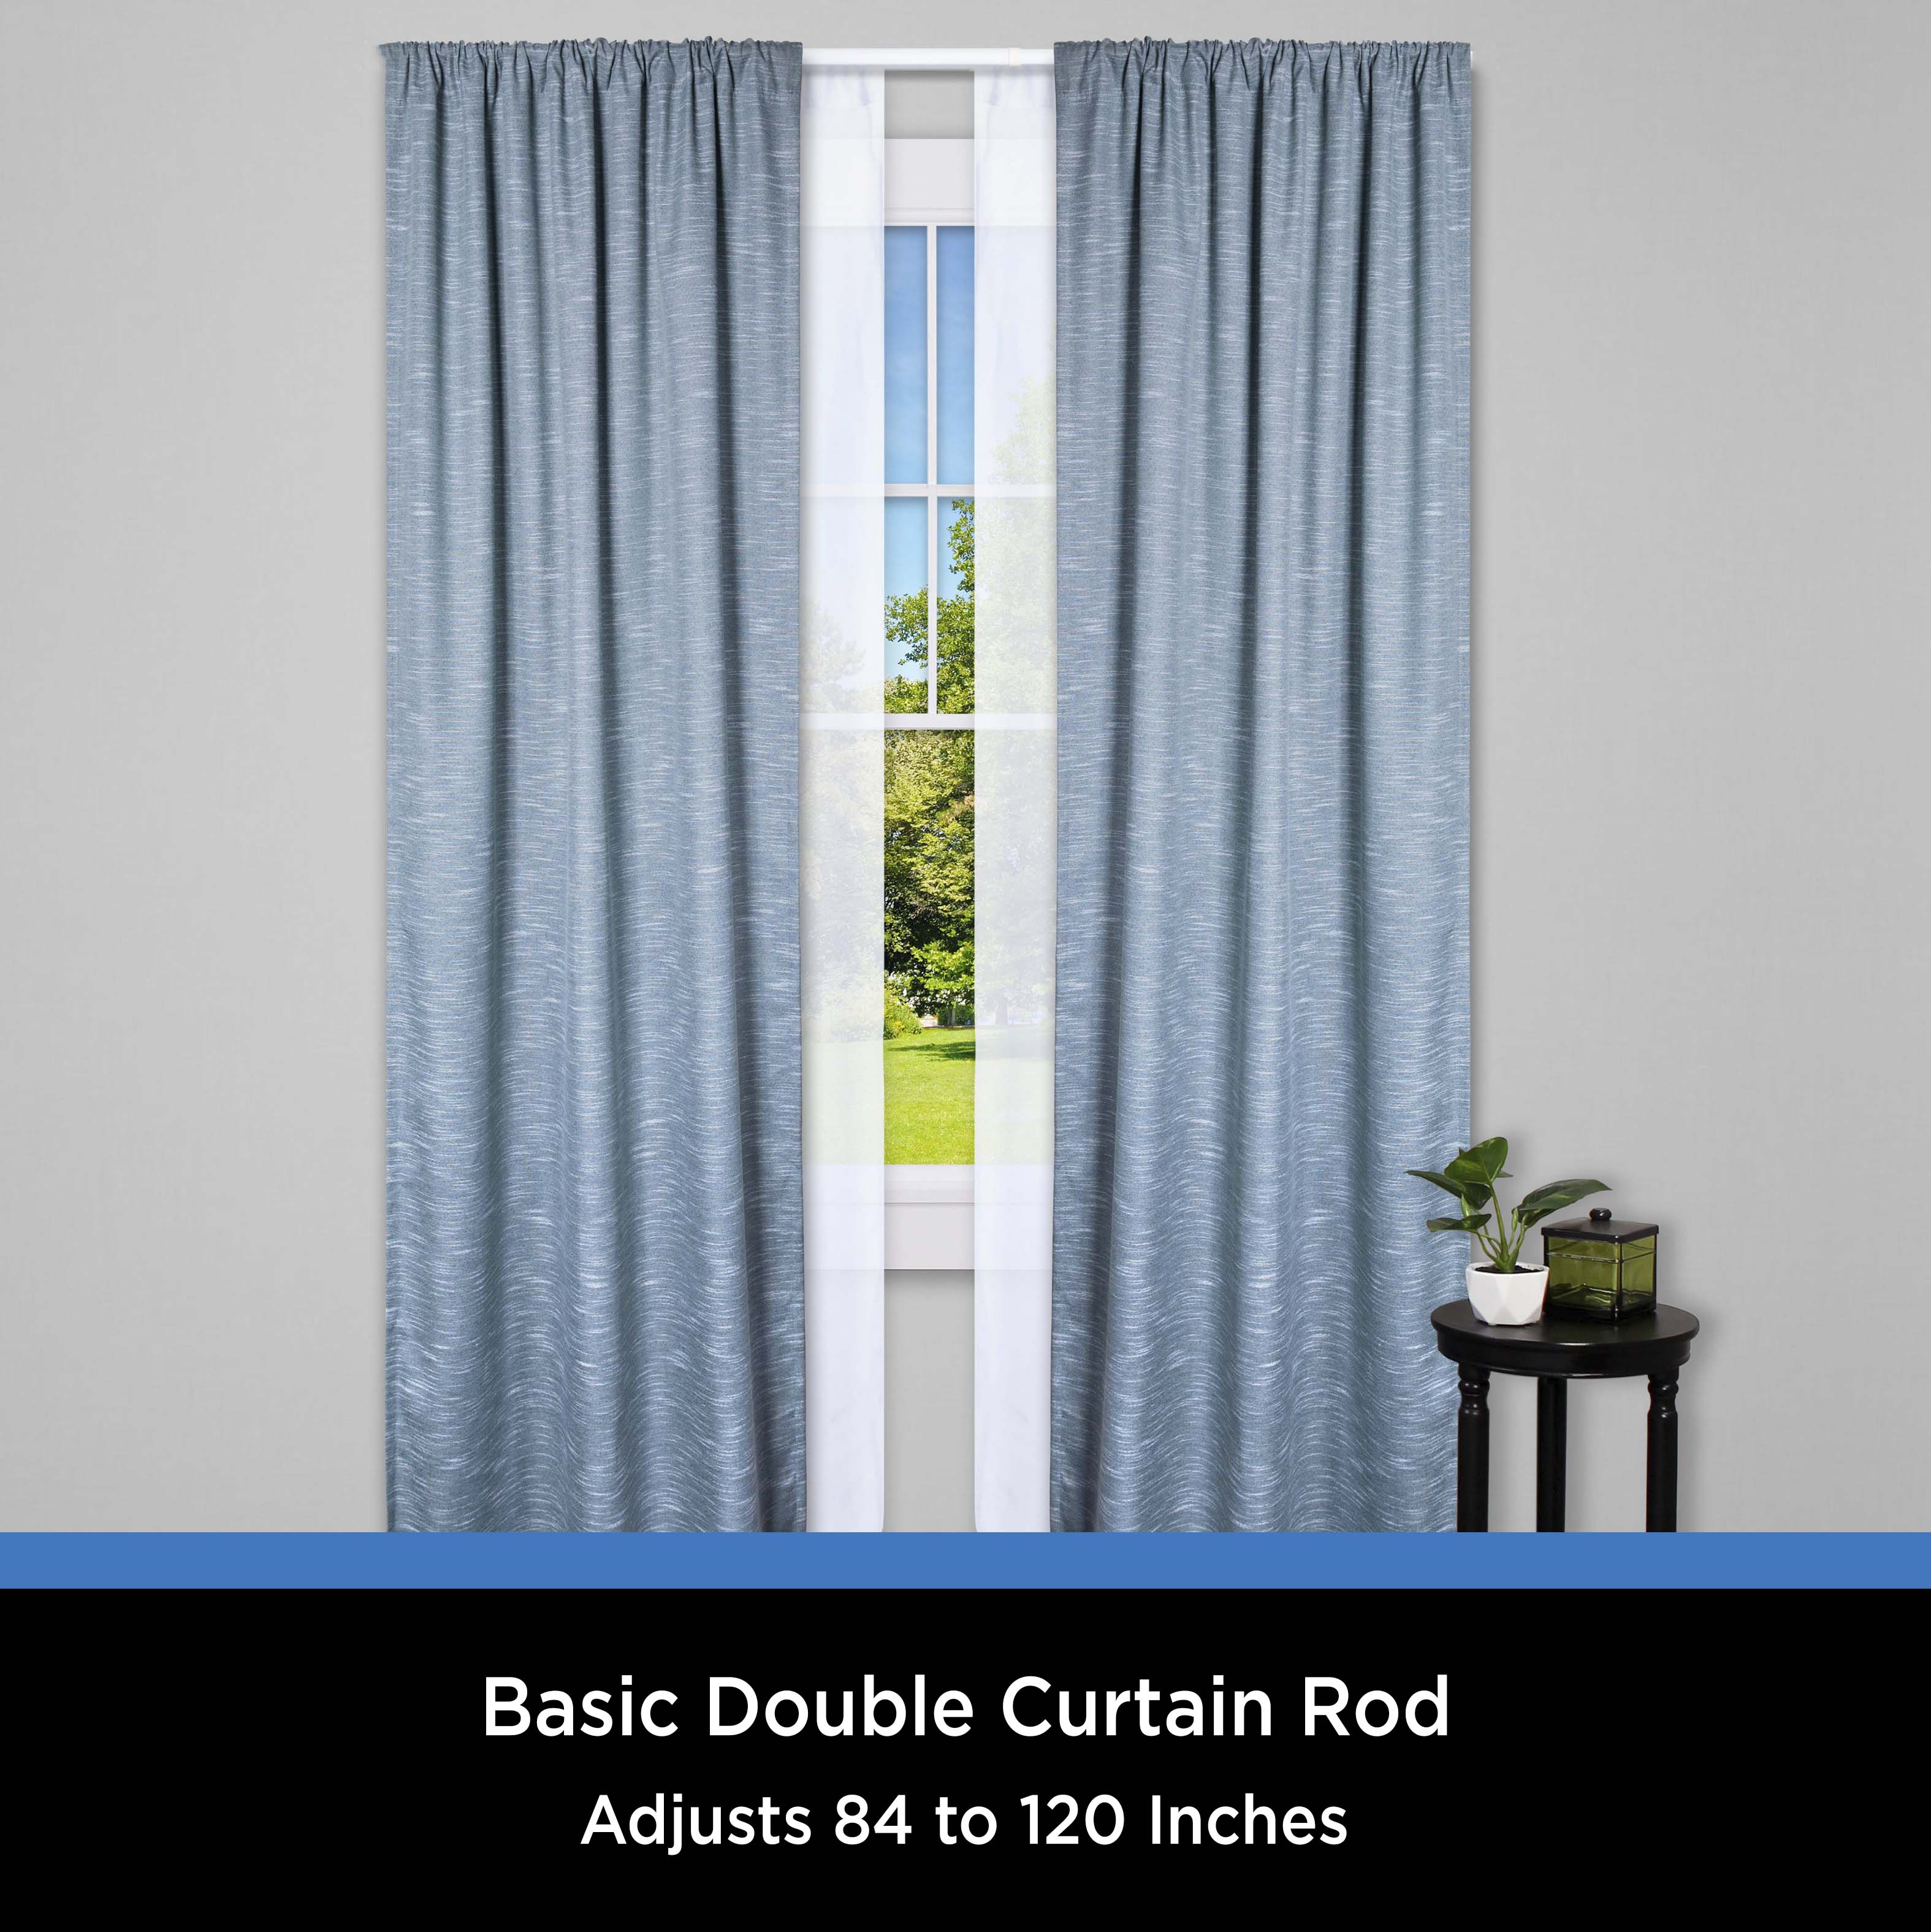 mainstays 84 120 in basic adjustable double curtain rod 2 3 in clearance